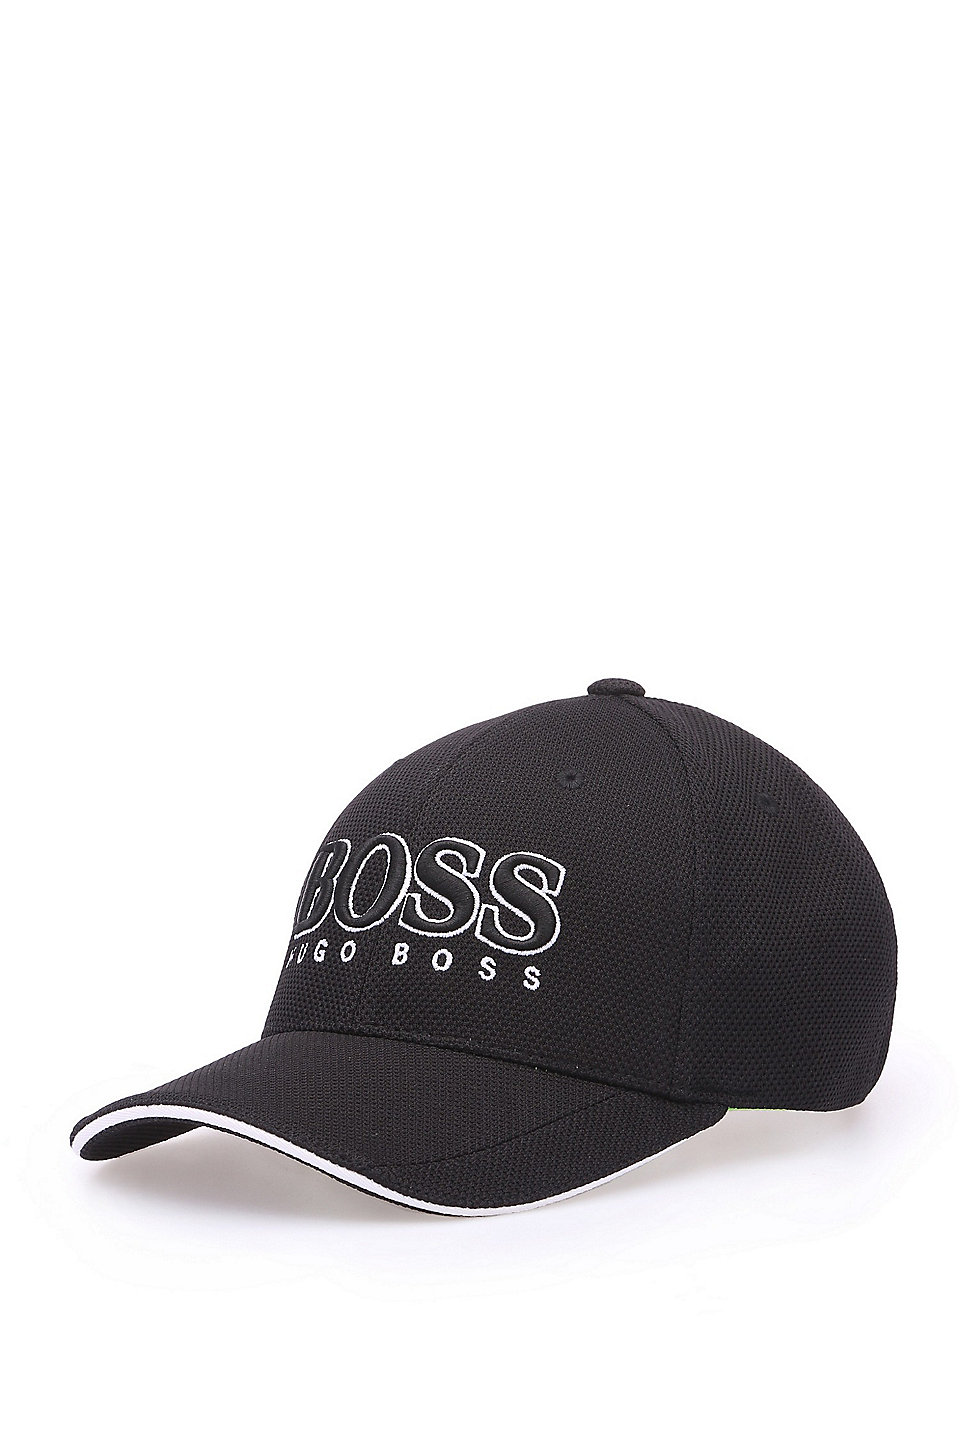 BOSS - Baseball cap in technical piqué fb5f78d3b3b